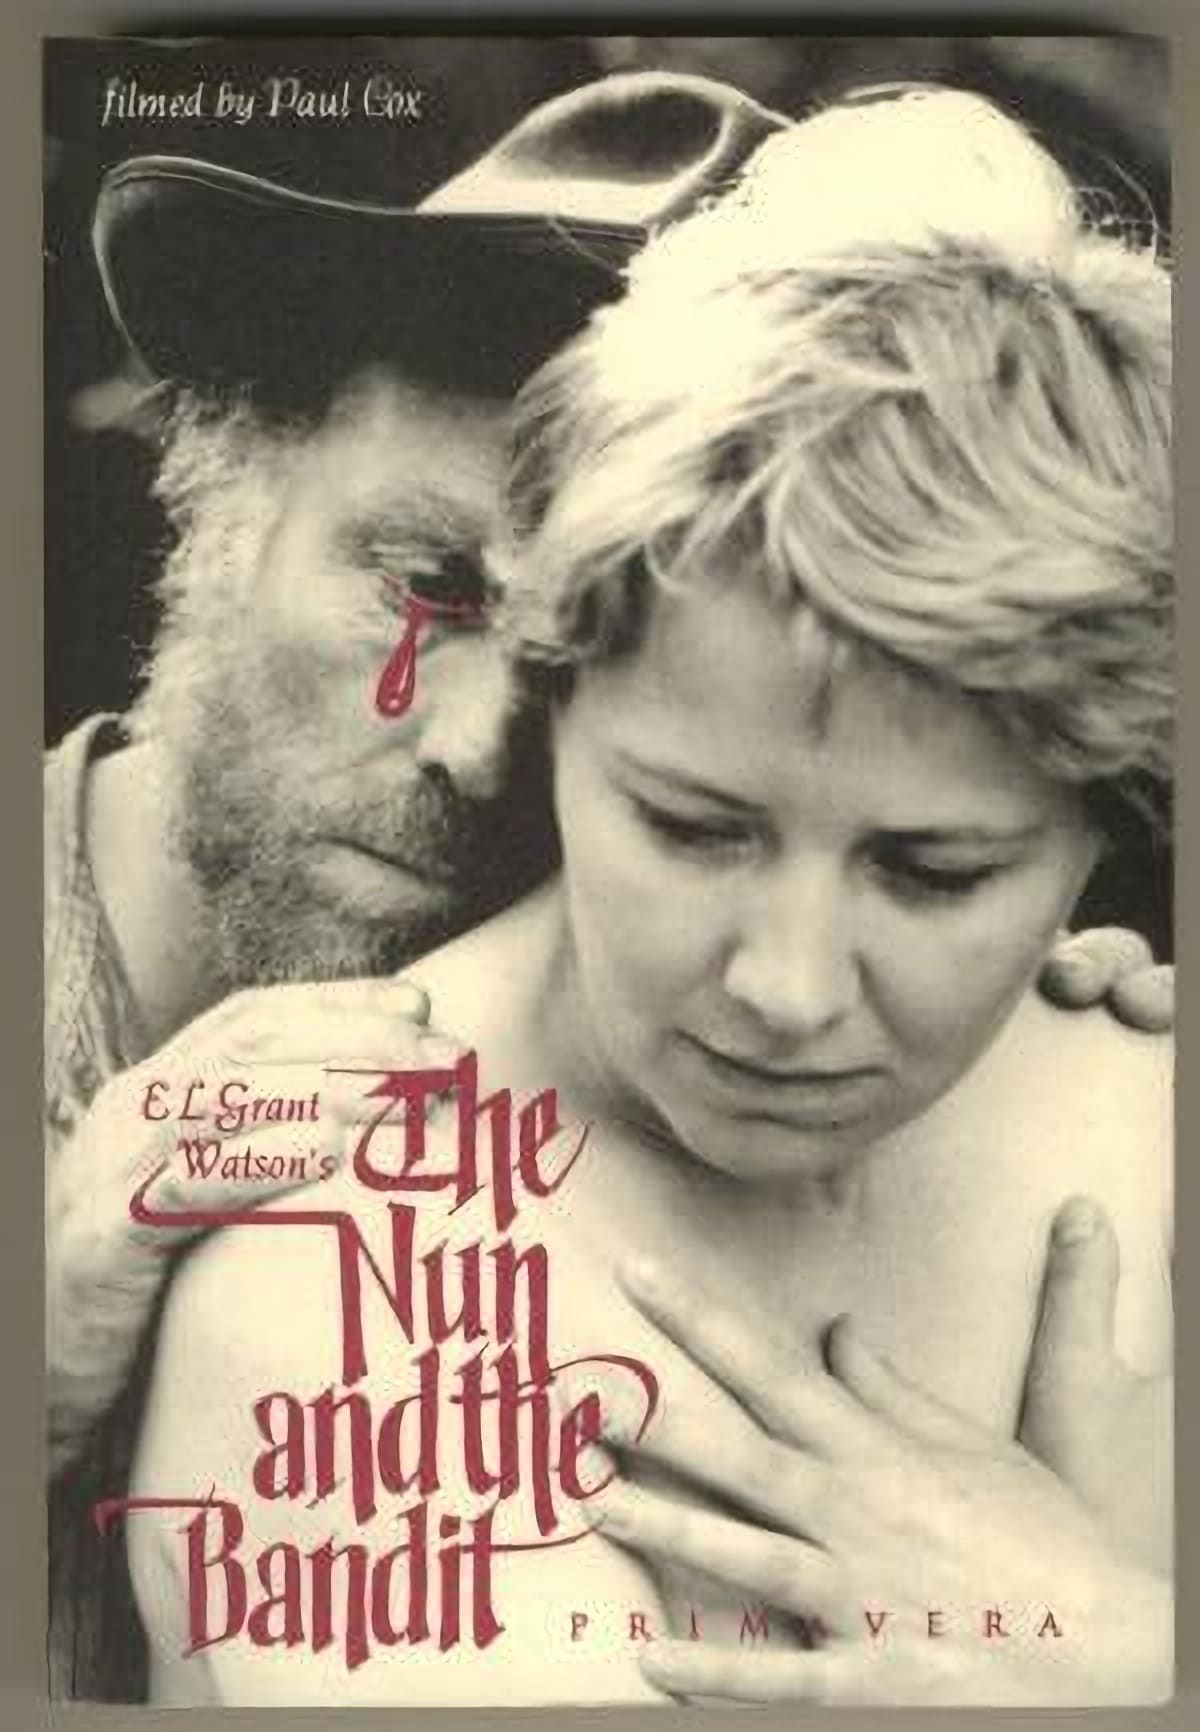 The Nun and the Bandit (1992)